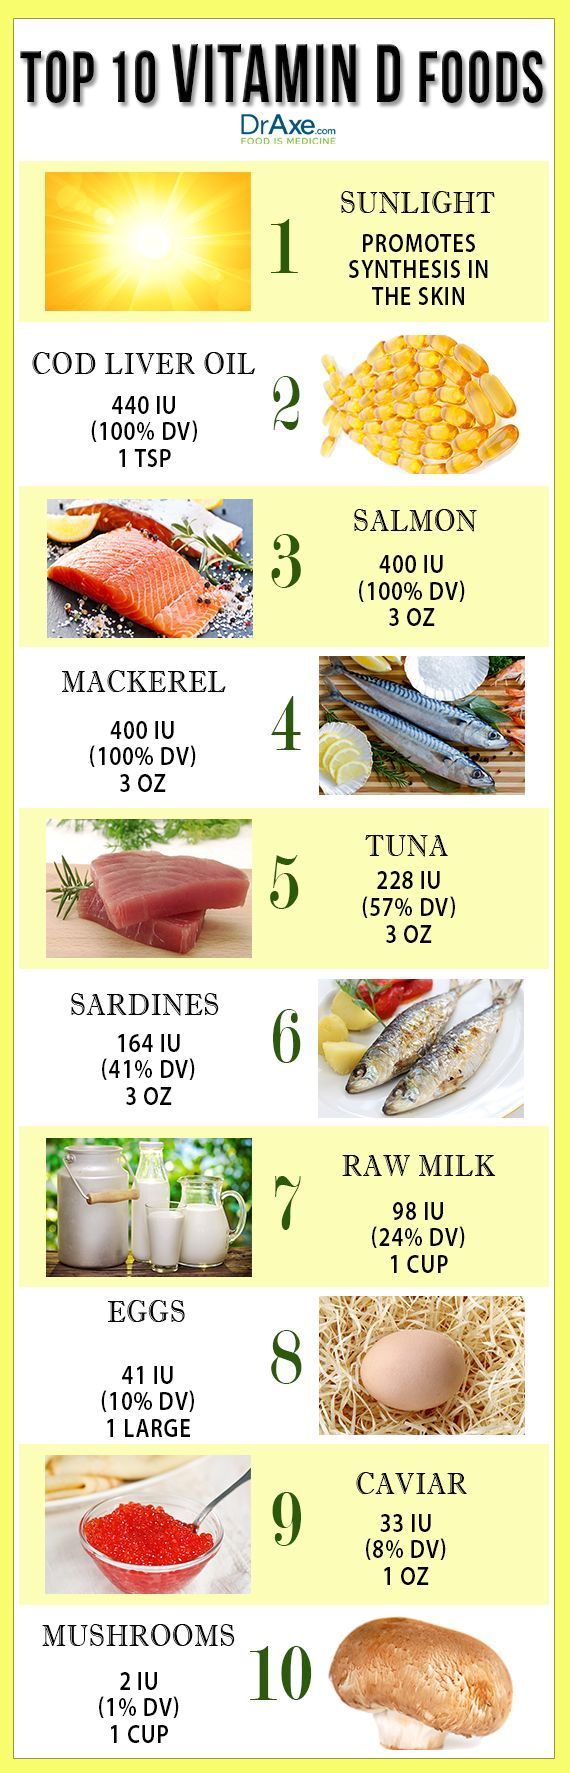 Vitamin D plays a significant role in fighting depression, healthy skin and weight management! Try these Top 10 Vitamin D Rich Foods to get your daily dose.